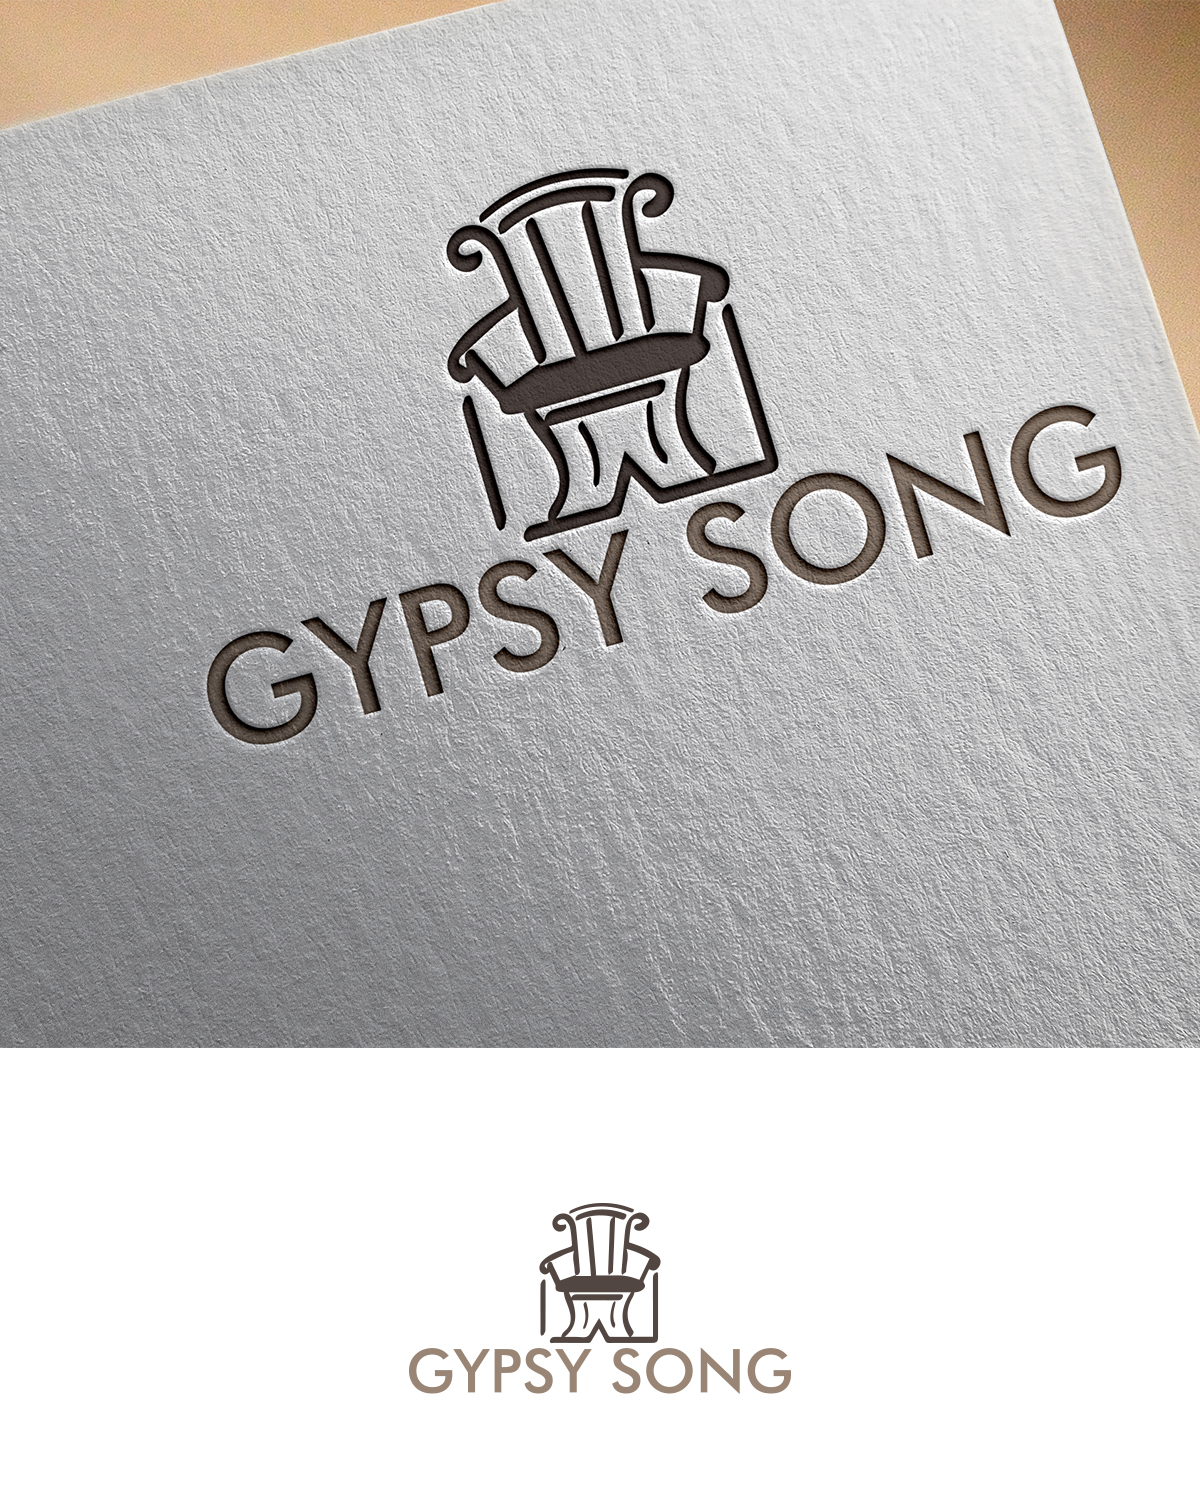 Elegant serious home furniture logo design for g or gsd or gypsy logo design by mdstudio for gypsy song design design 17770622 reheart Image collections